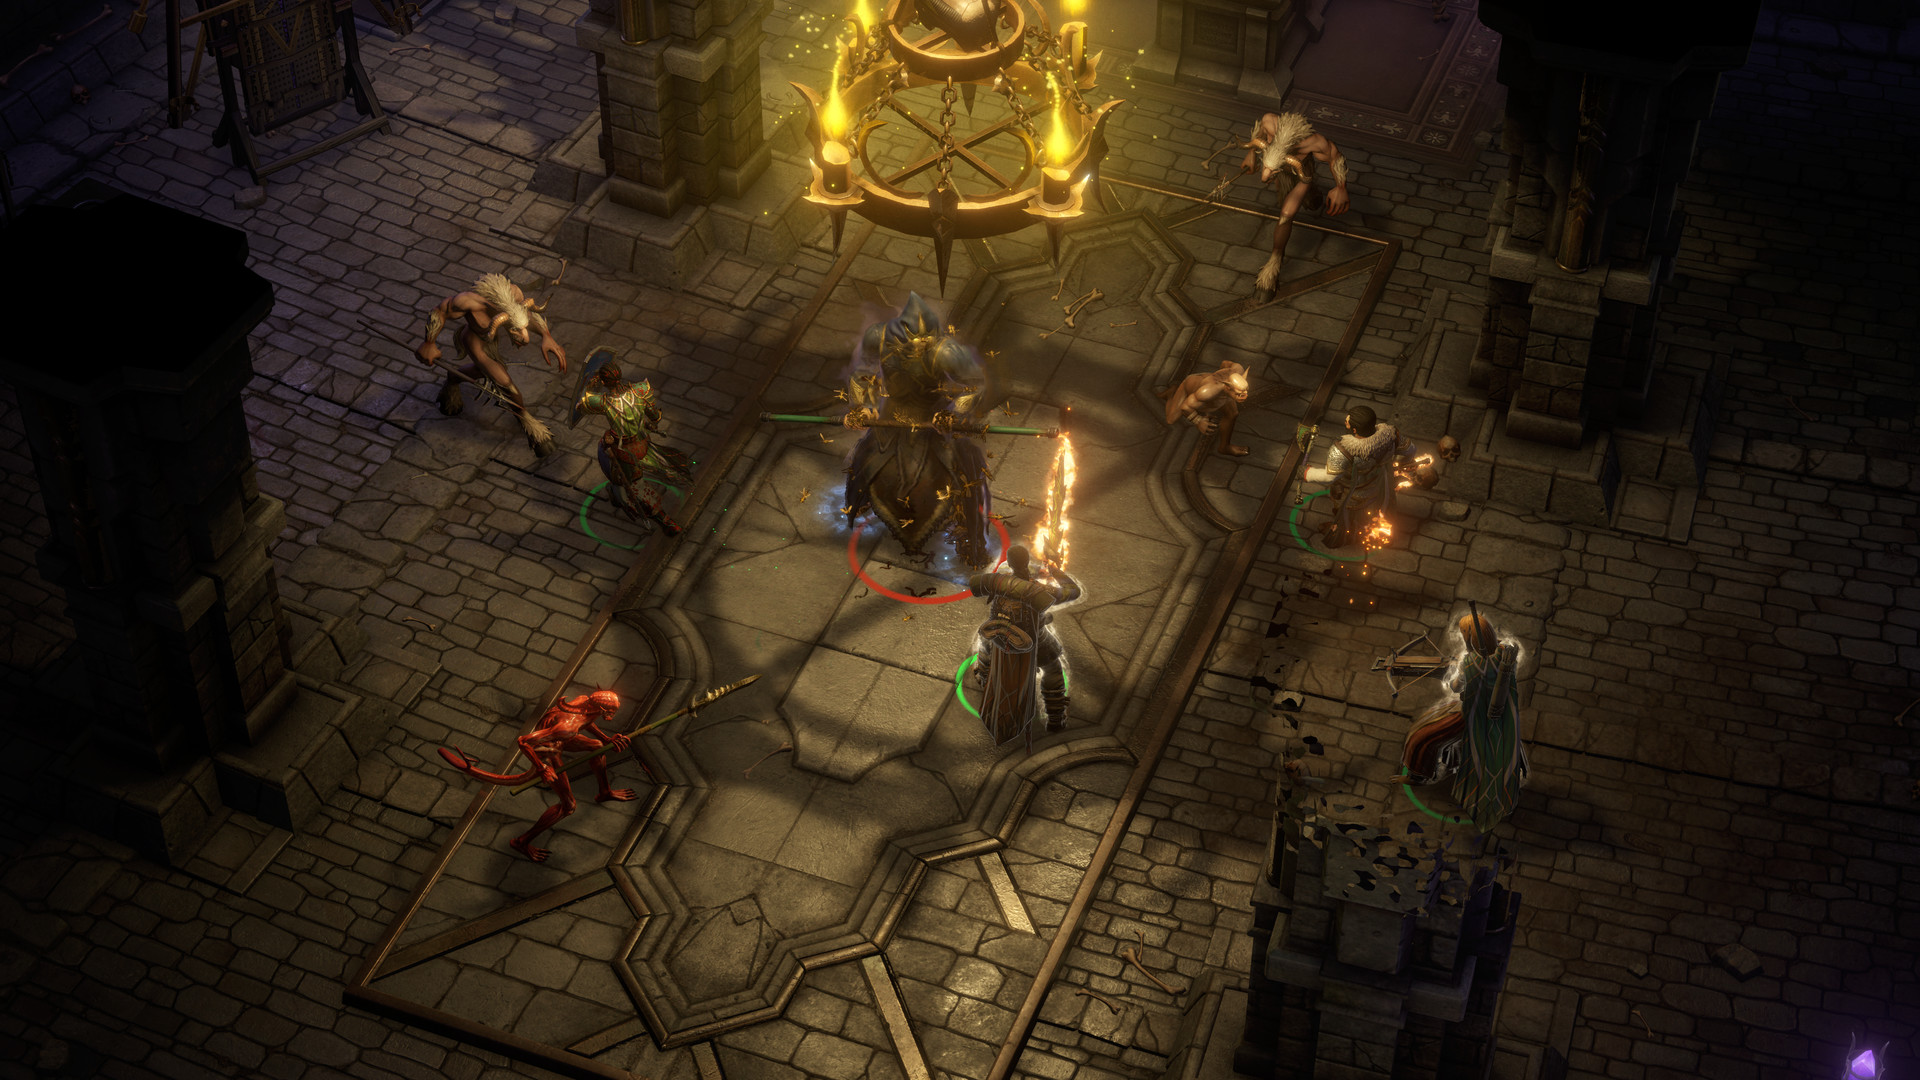 pathfinder-wrath-of-the-righteous-mythic-edition-pc-screenshot-4